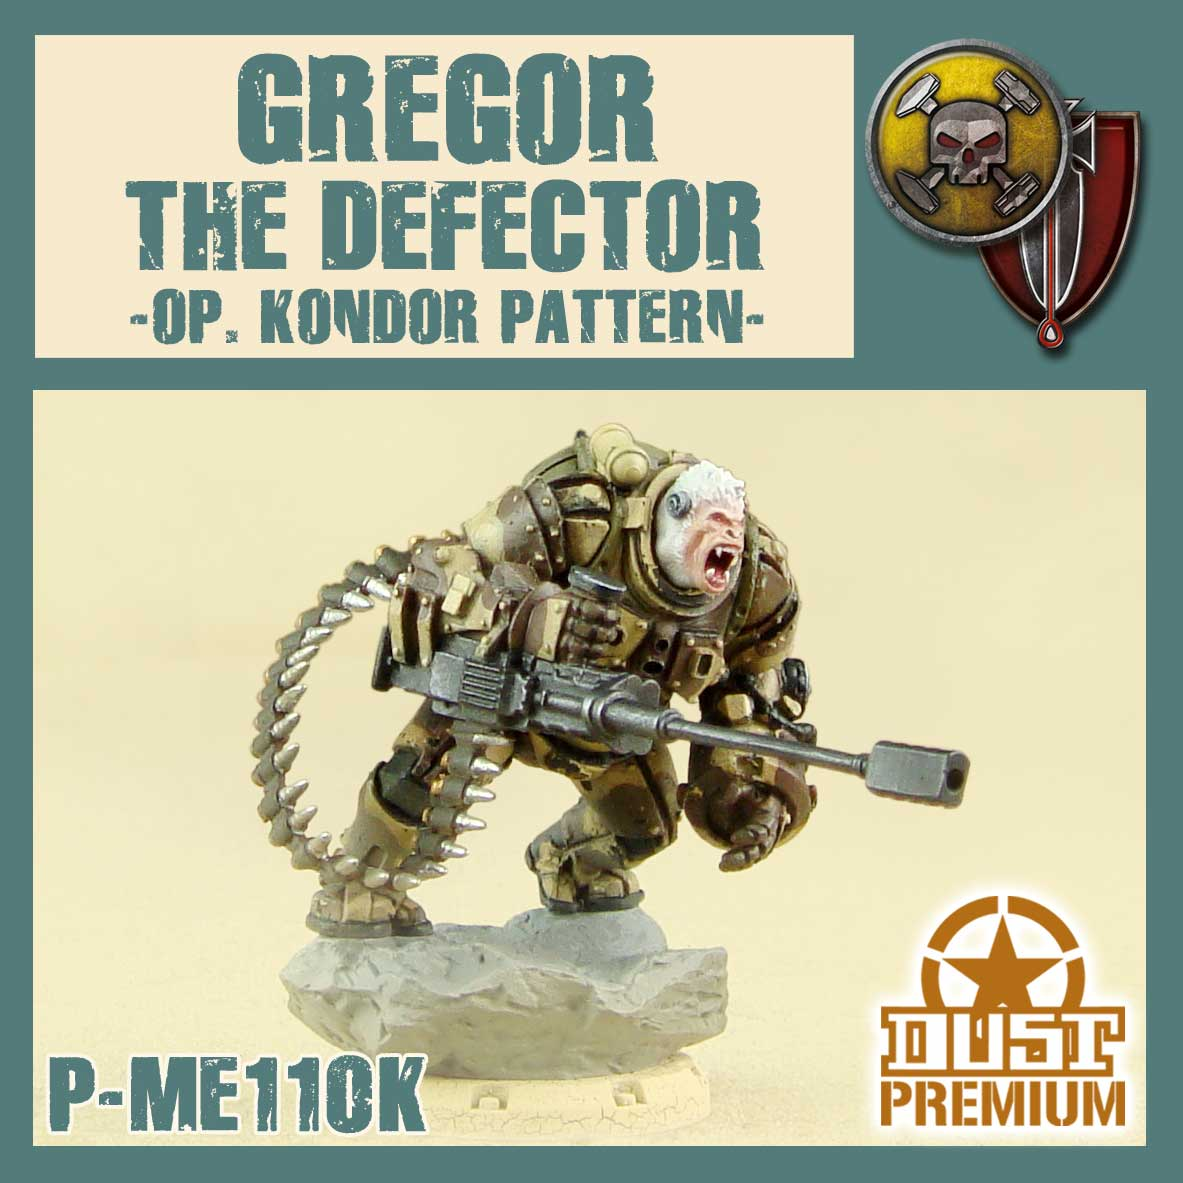 GREGOR THE DEFECTOR - Premium